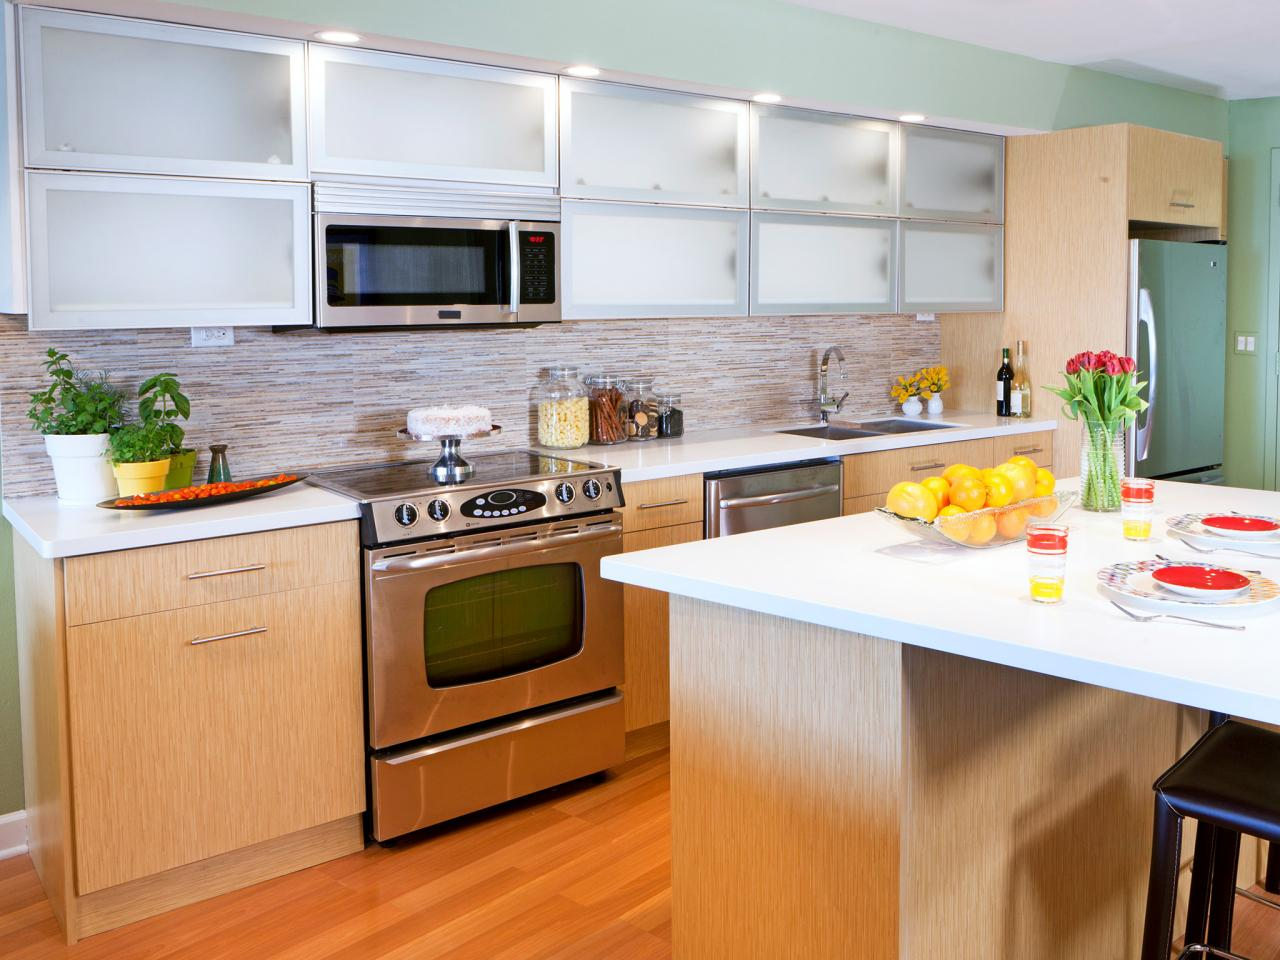 Stock kitchen cabinets pictures ideas tips from hgtv for Ready made kitchen cupboards